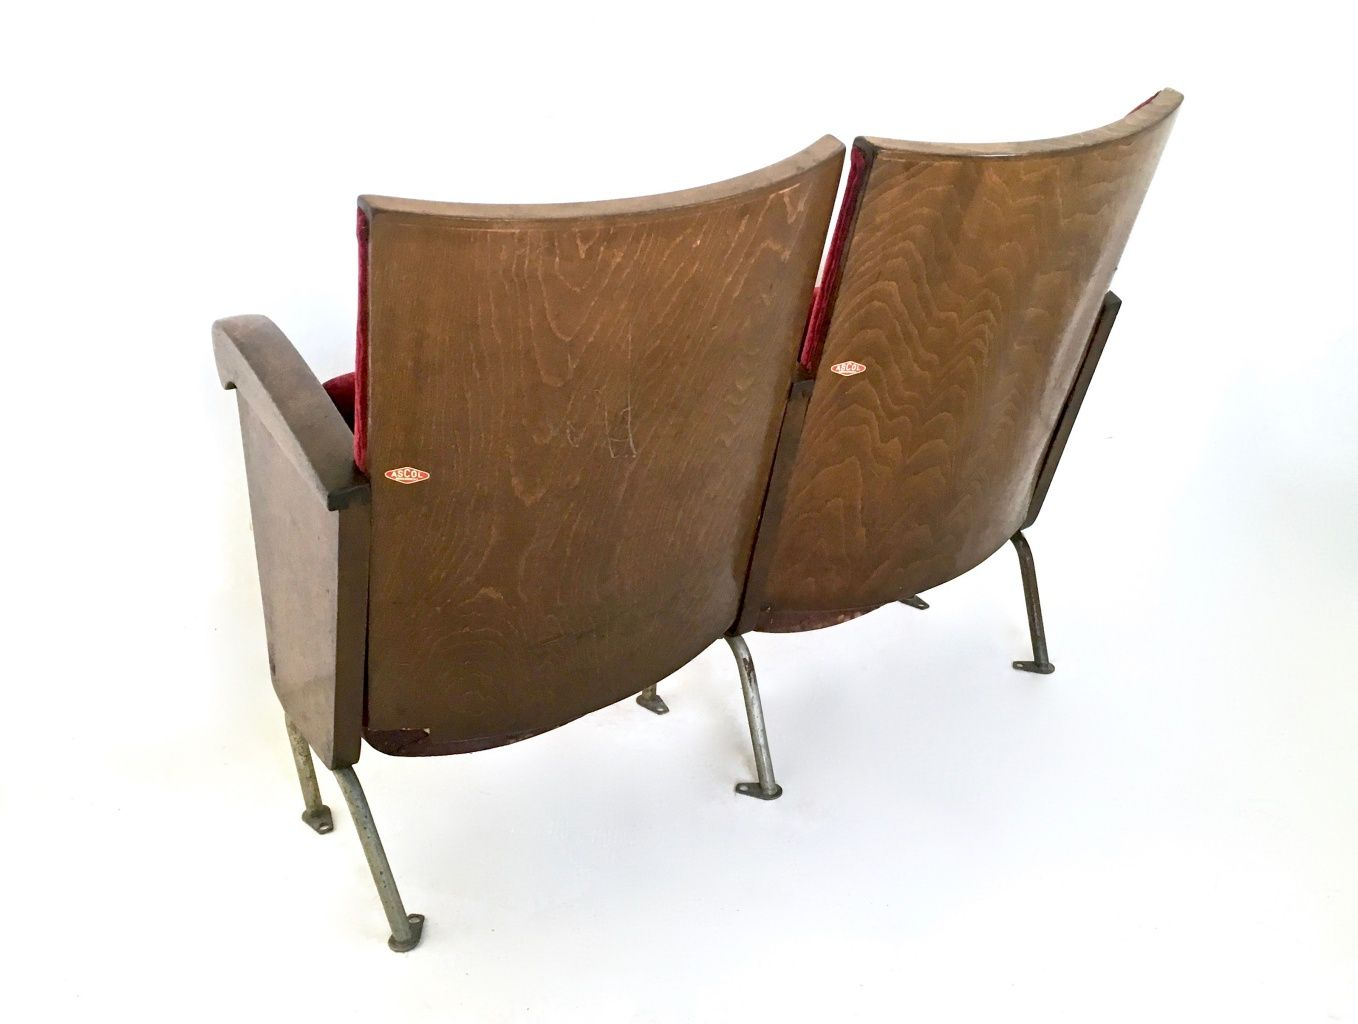 Red Velvet Cinema Seats from Ascol, 1950s for sale at Pamono